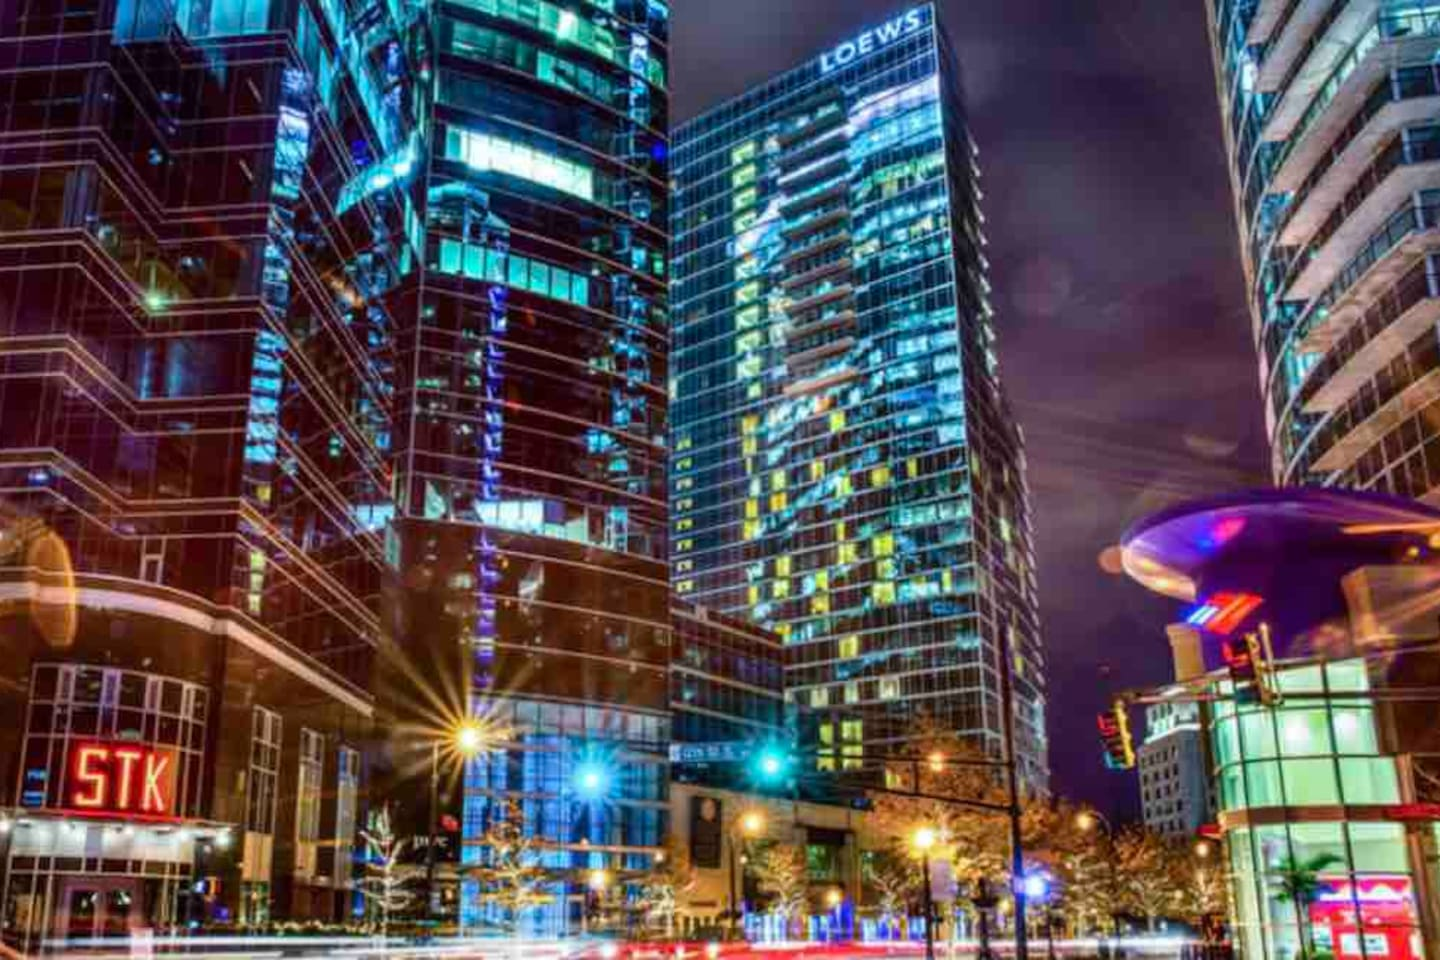 Beautiful Midtown Atlanta! You Will Be In The Middle Of All The Action In Atlanta! Great Restaurants, Great Site Seeing, Great Vibes Around The City! Midtown Atlanta Will Leave You With An Unforgettable Experience!